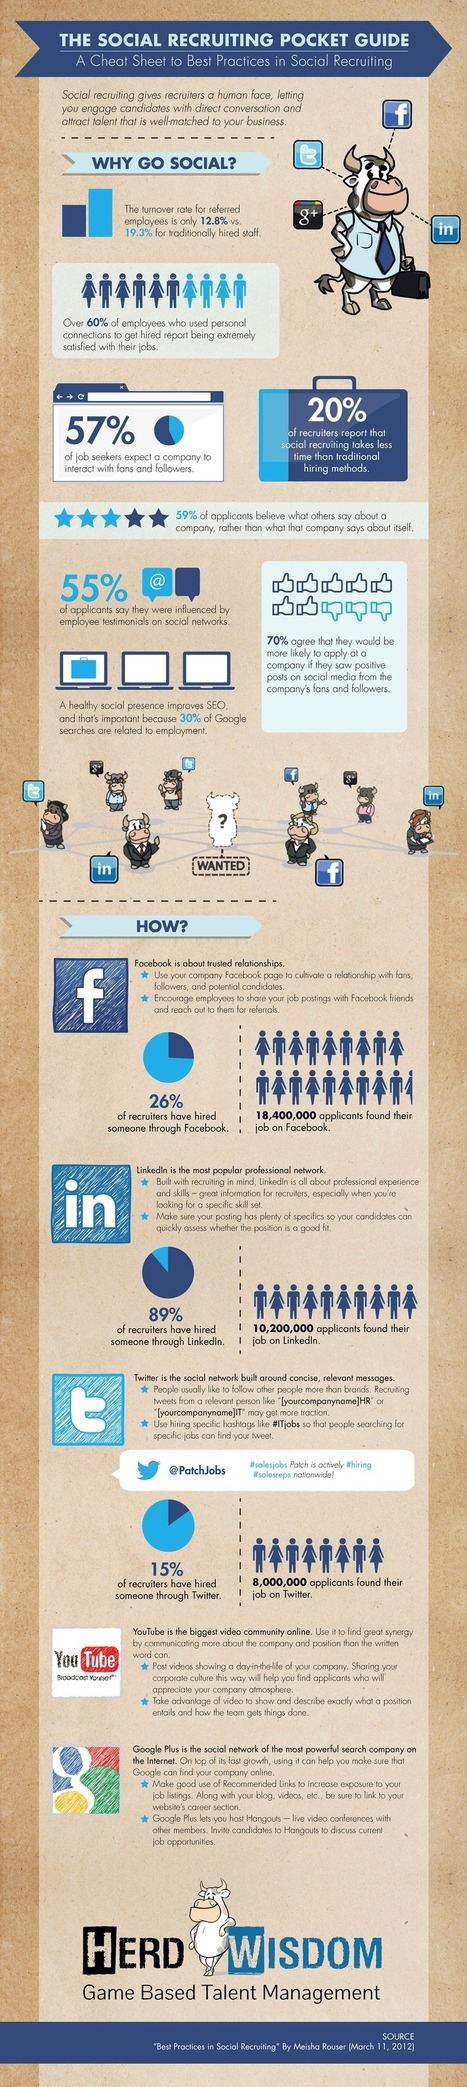 The Social Recruiting Pocket Guide [INFOGRAPHIC] | Social Recruiting | Scoop.it